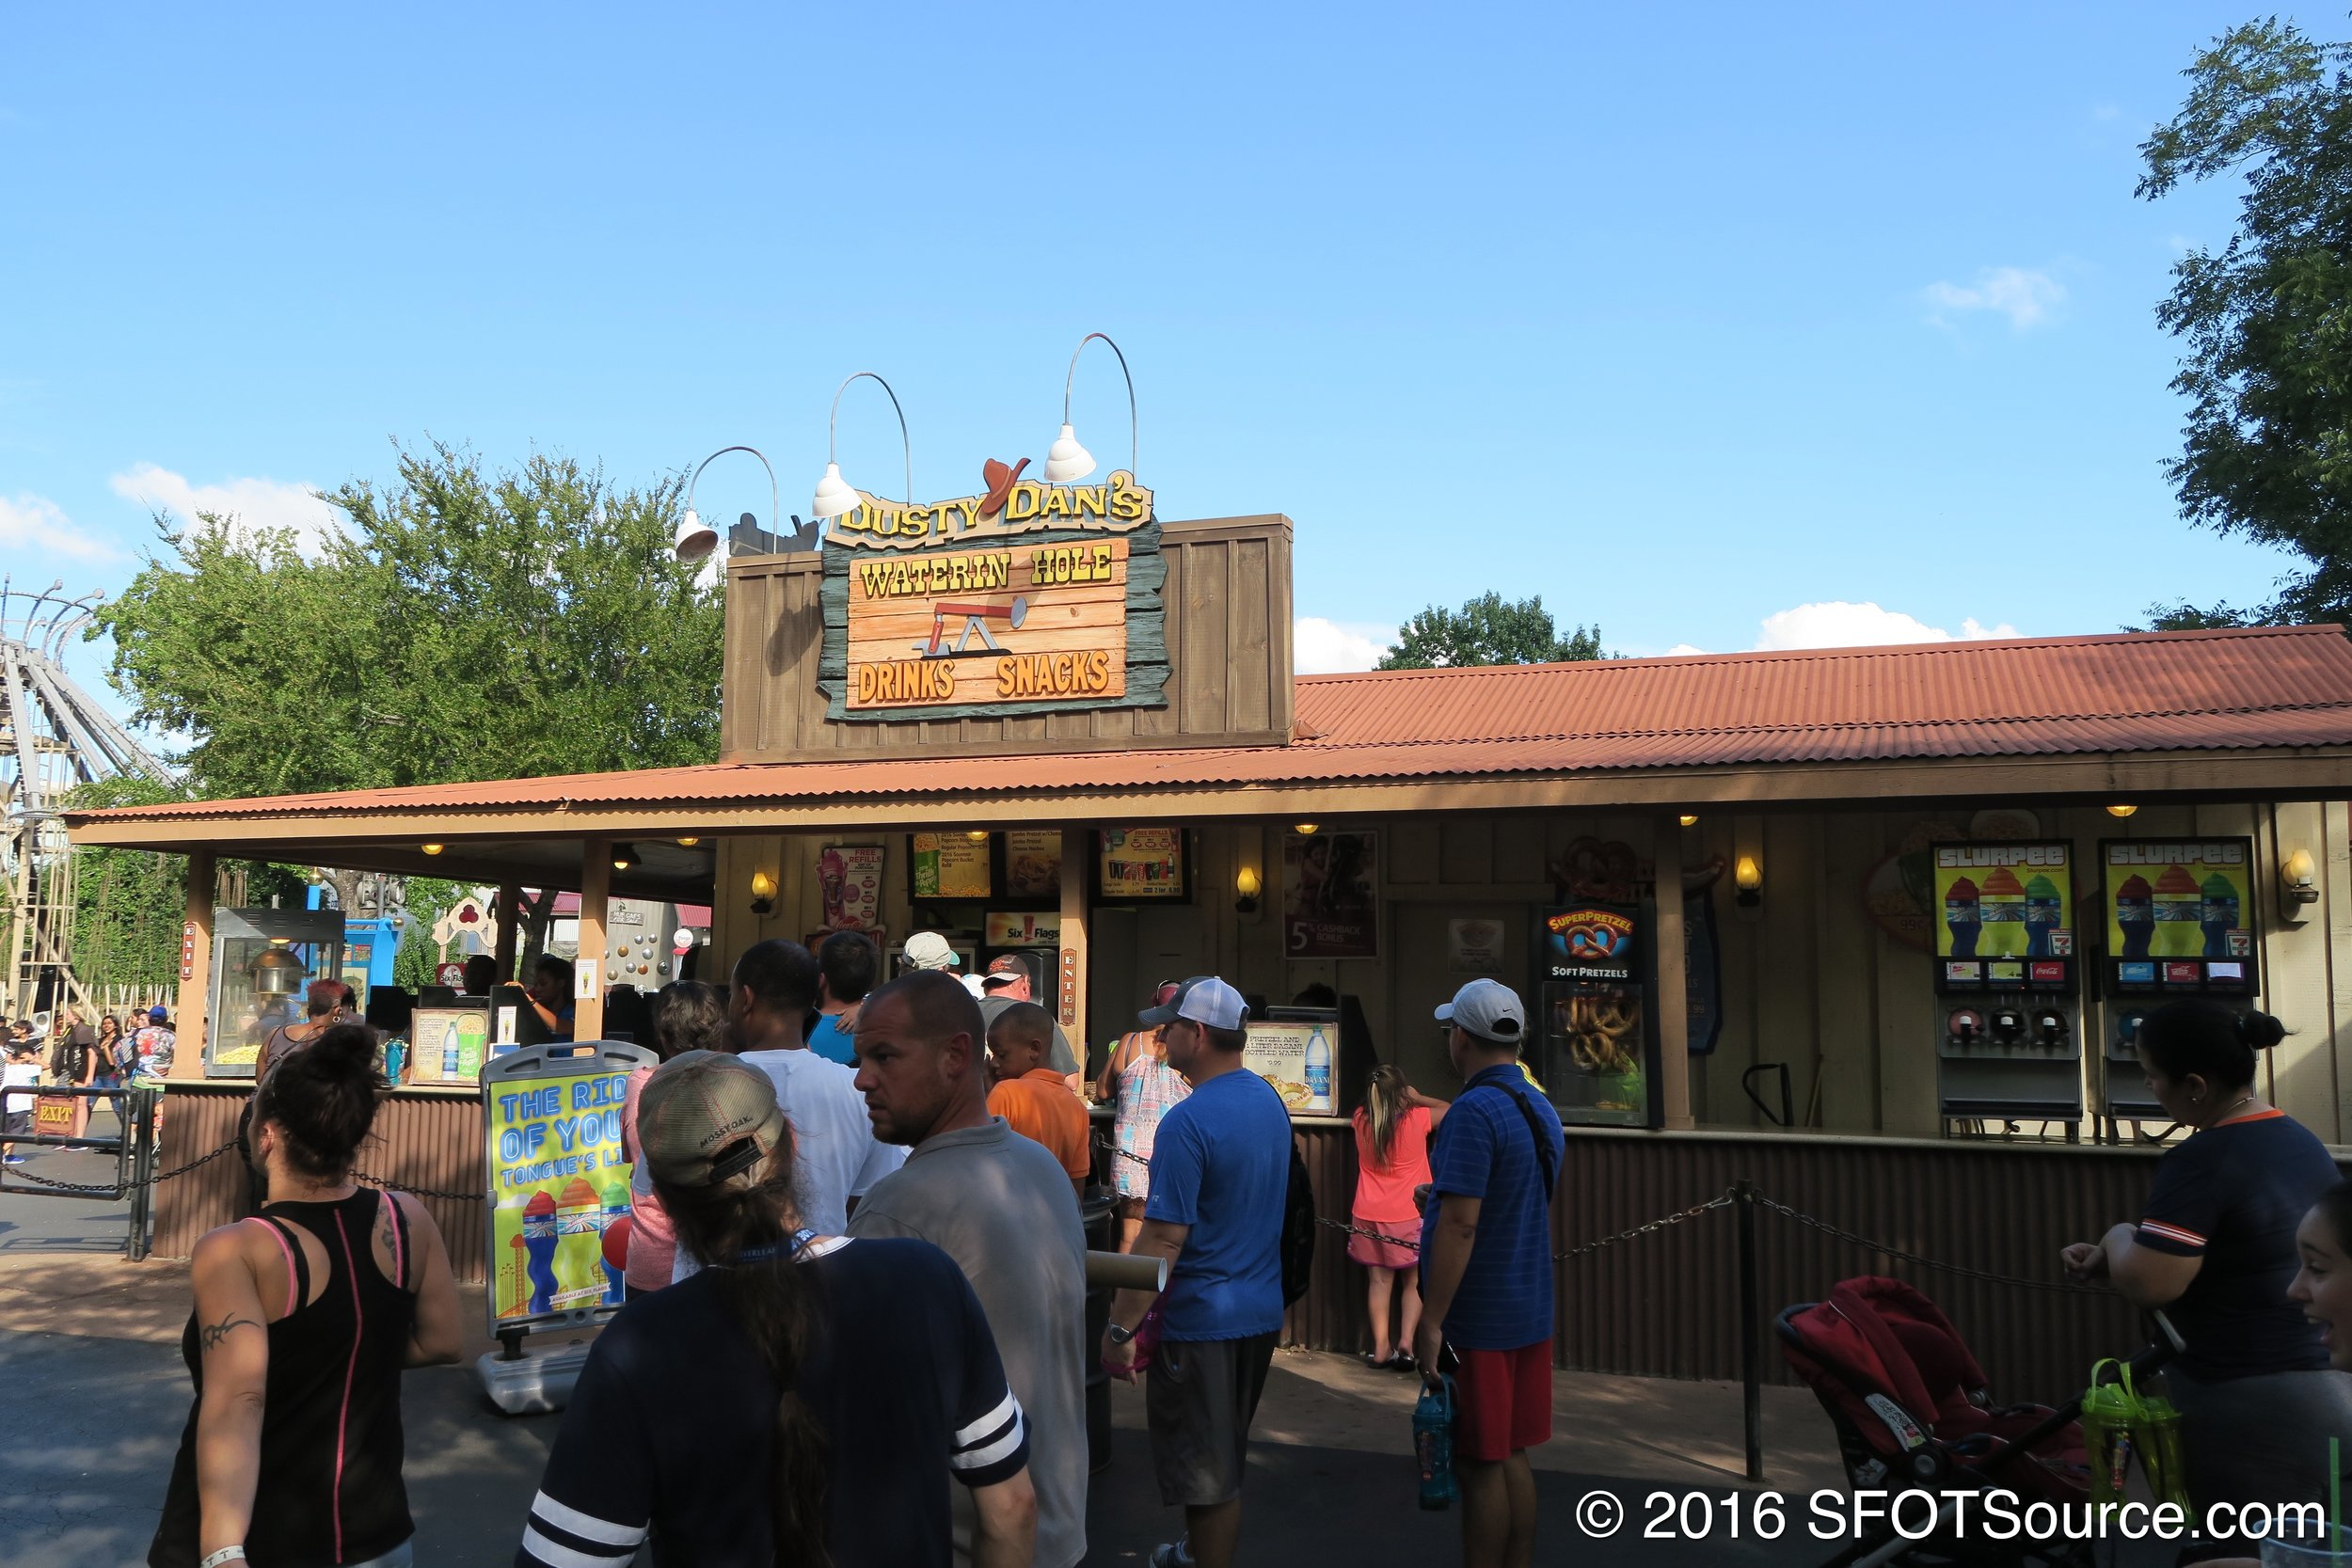 Dusty Dan's is an outdoor food stand.